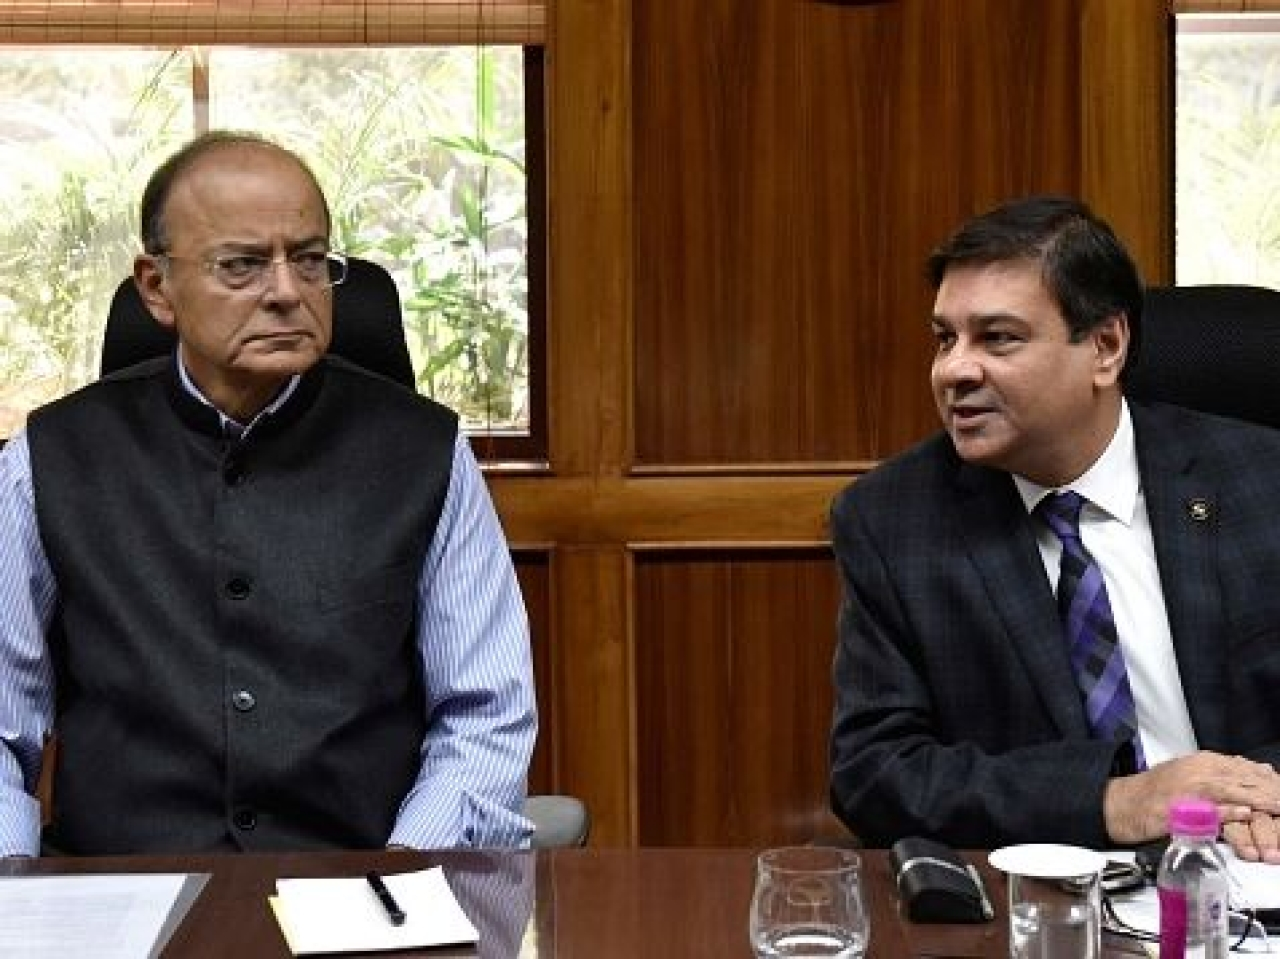 Stand-Off To Skirmish: Government Forced To Invoke Section 7 Of RBI Act Due To Central Bank's Inflexibility, Say Sources